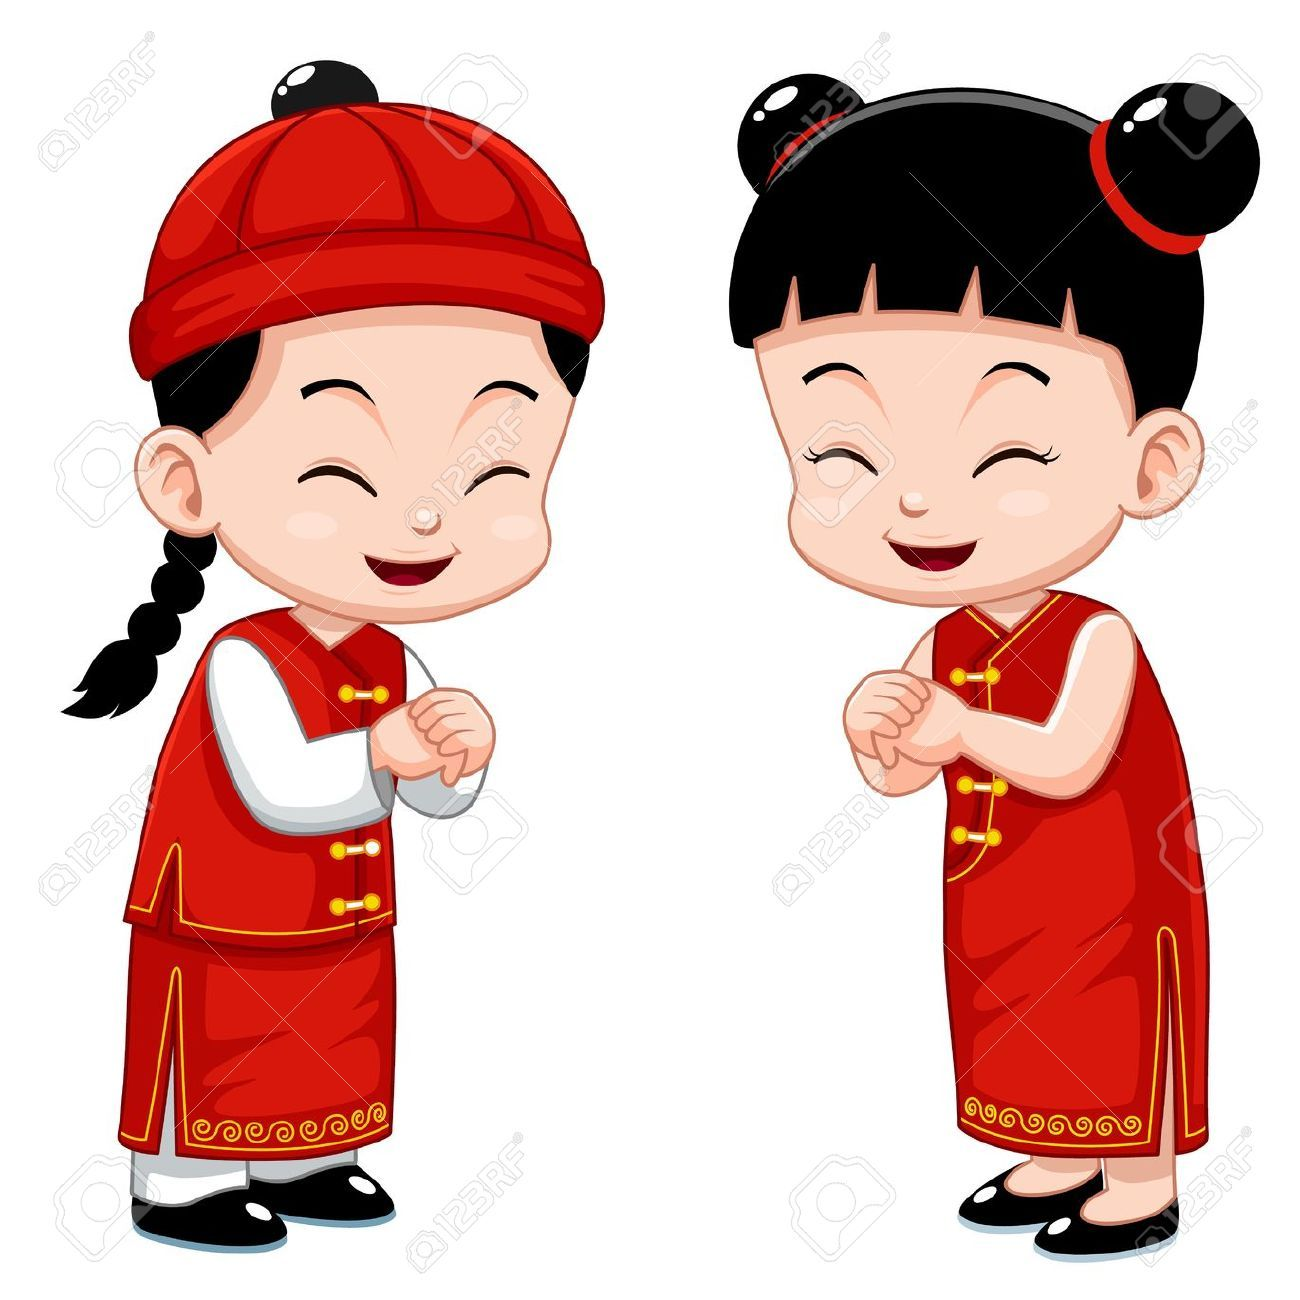 chinese children chinese kids illustration nhan vat hoat hinh rh pinterest com chinese clipart black and white chinese clipart girl